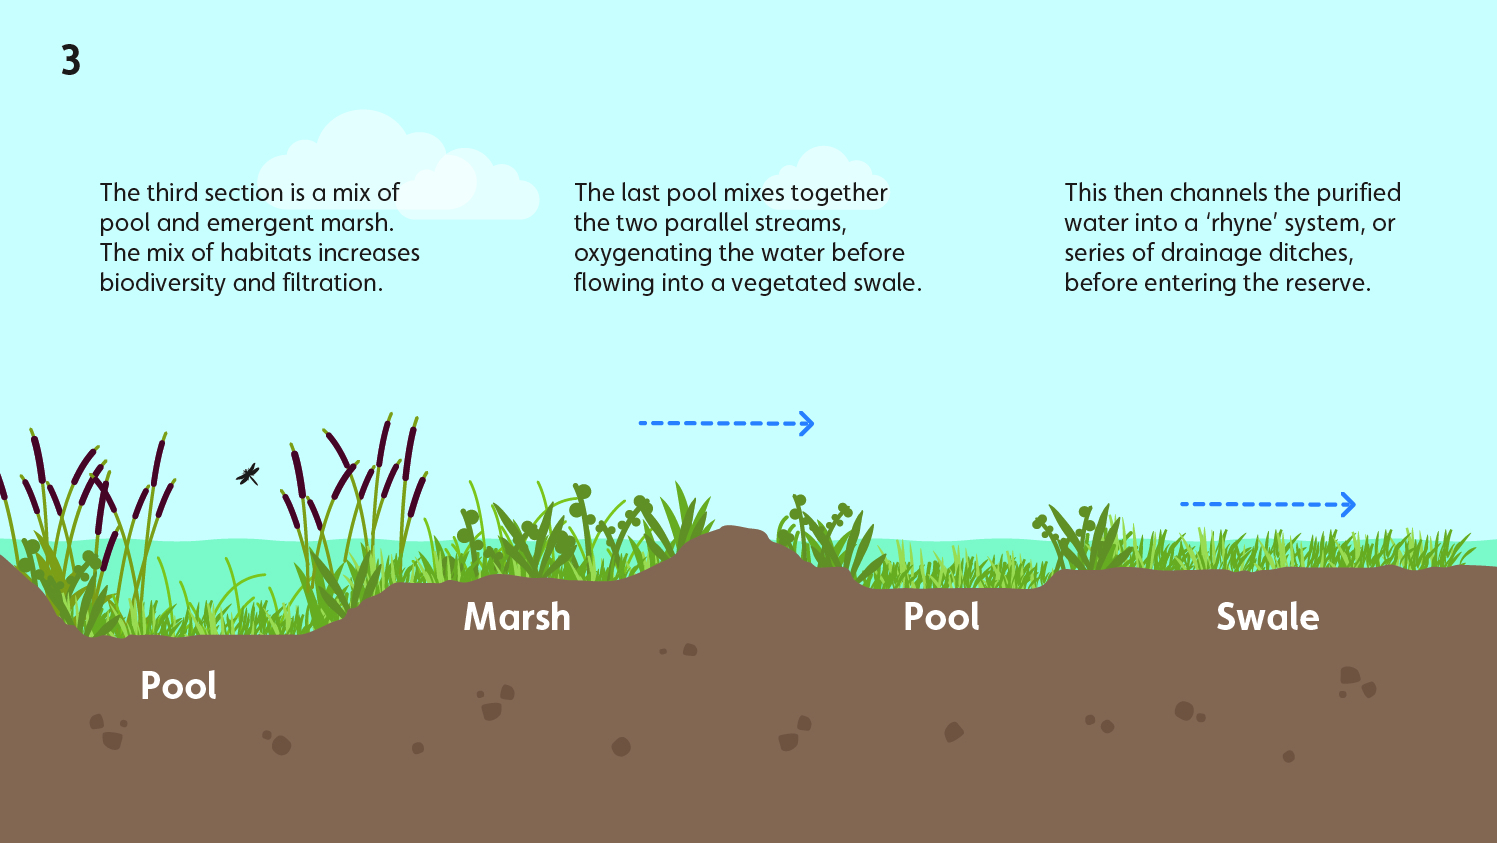 Wetland water treatment system - part 3 - pools and more marsh